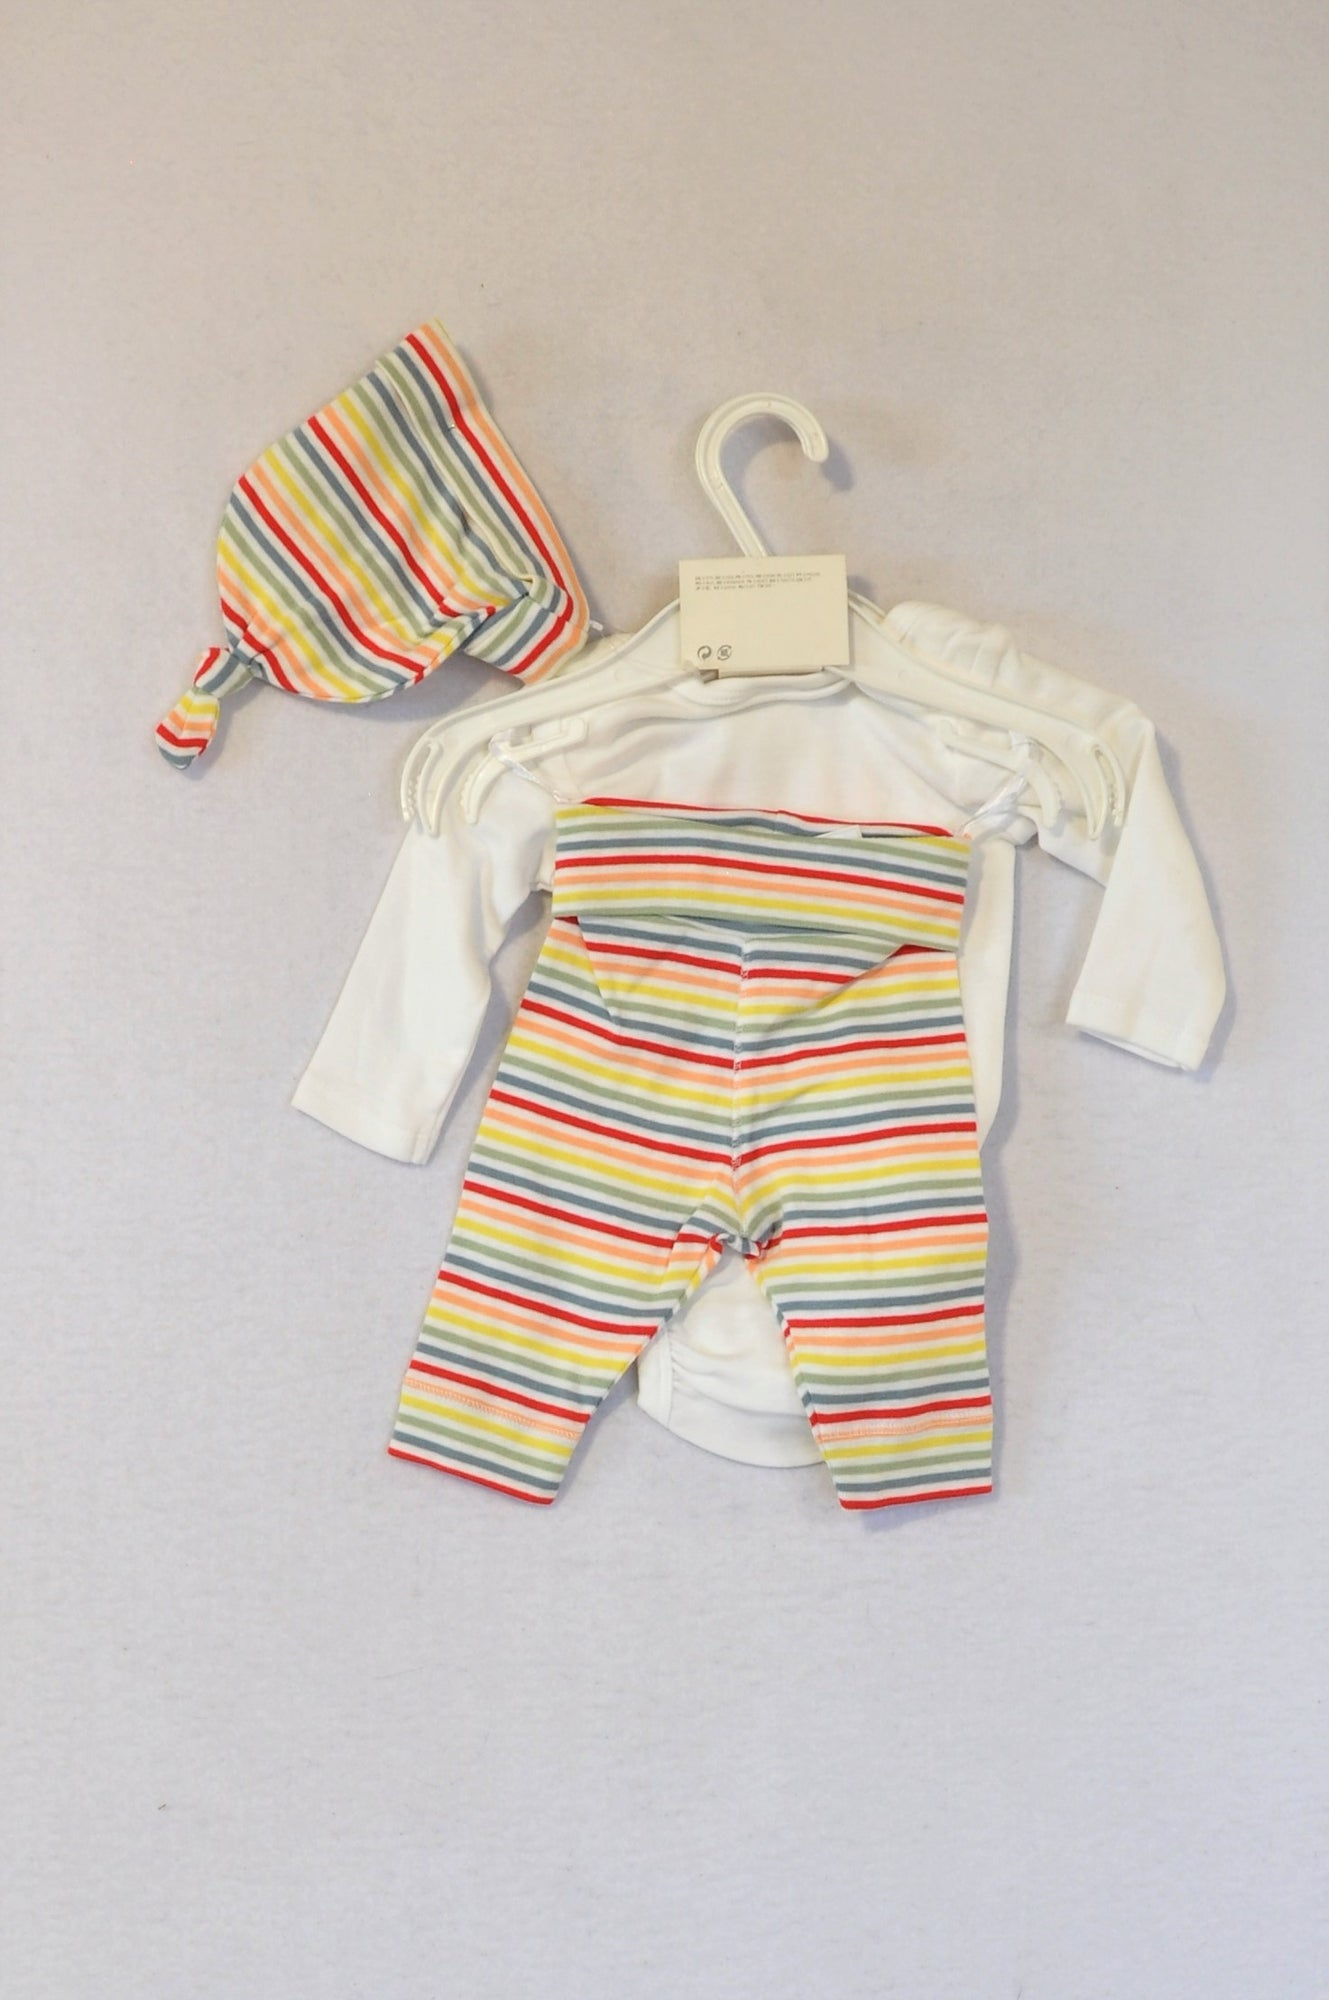 New H&M Me Love You Babygrow, Striped Leggings & Beanie Outfit Girls 0-3 months